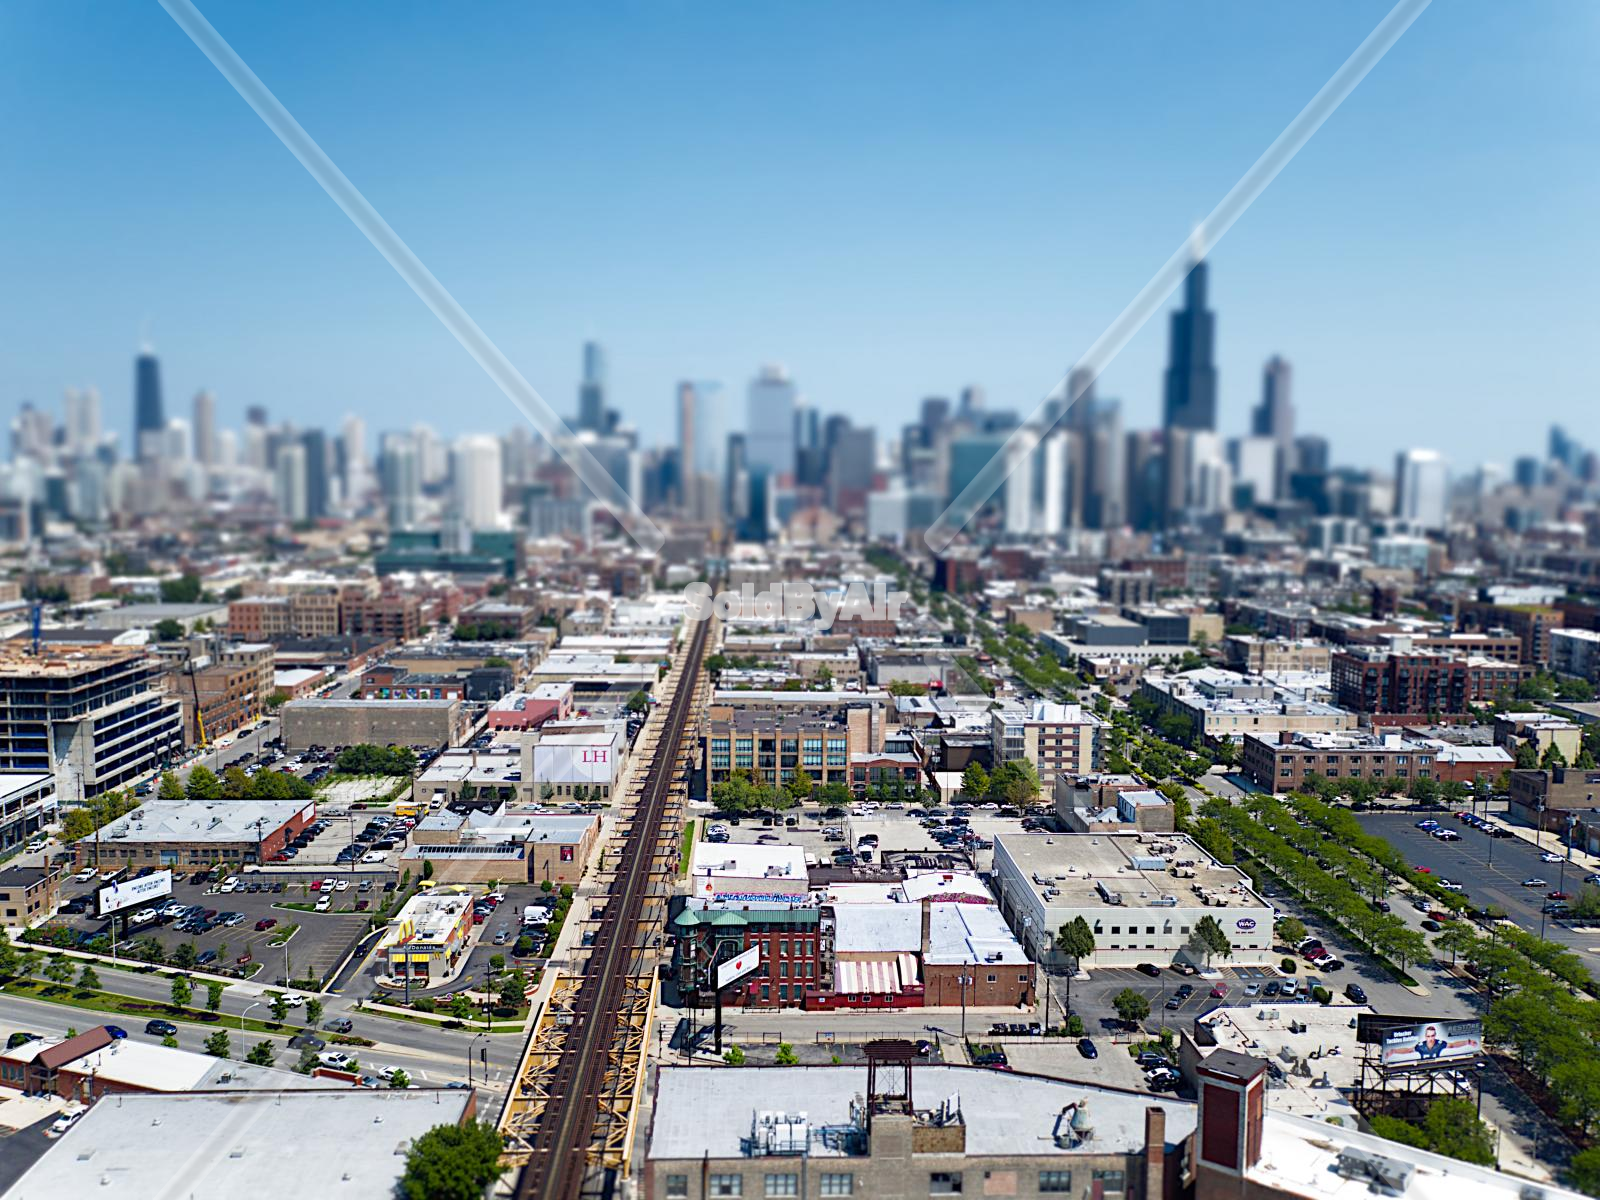 Drone Photo of View from above Fulton Market in Chicago Illinois